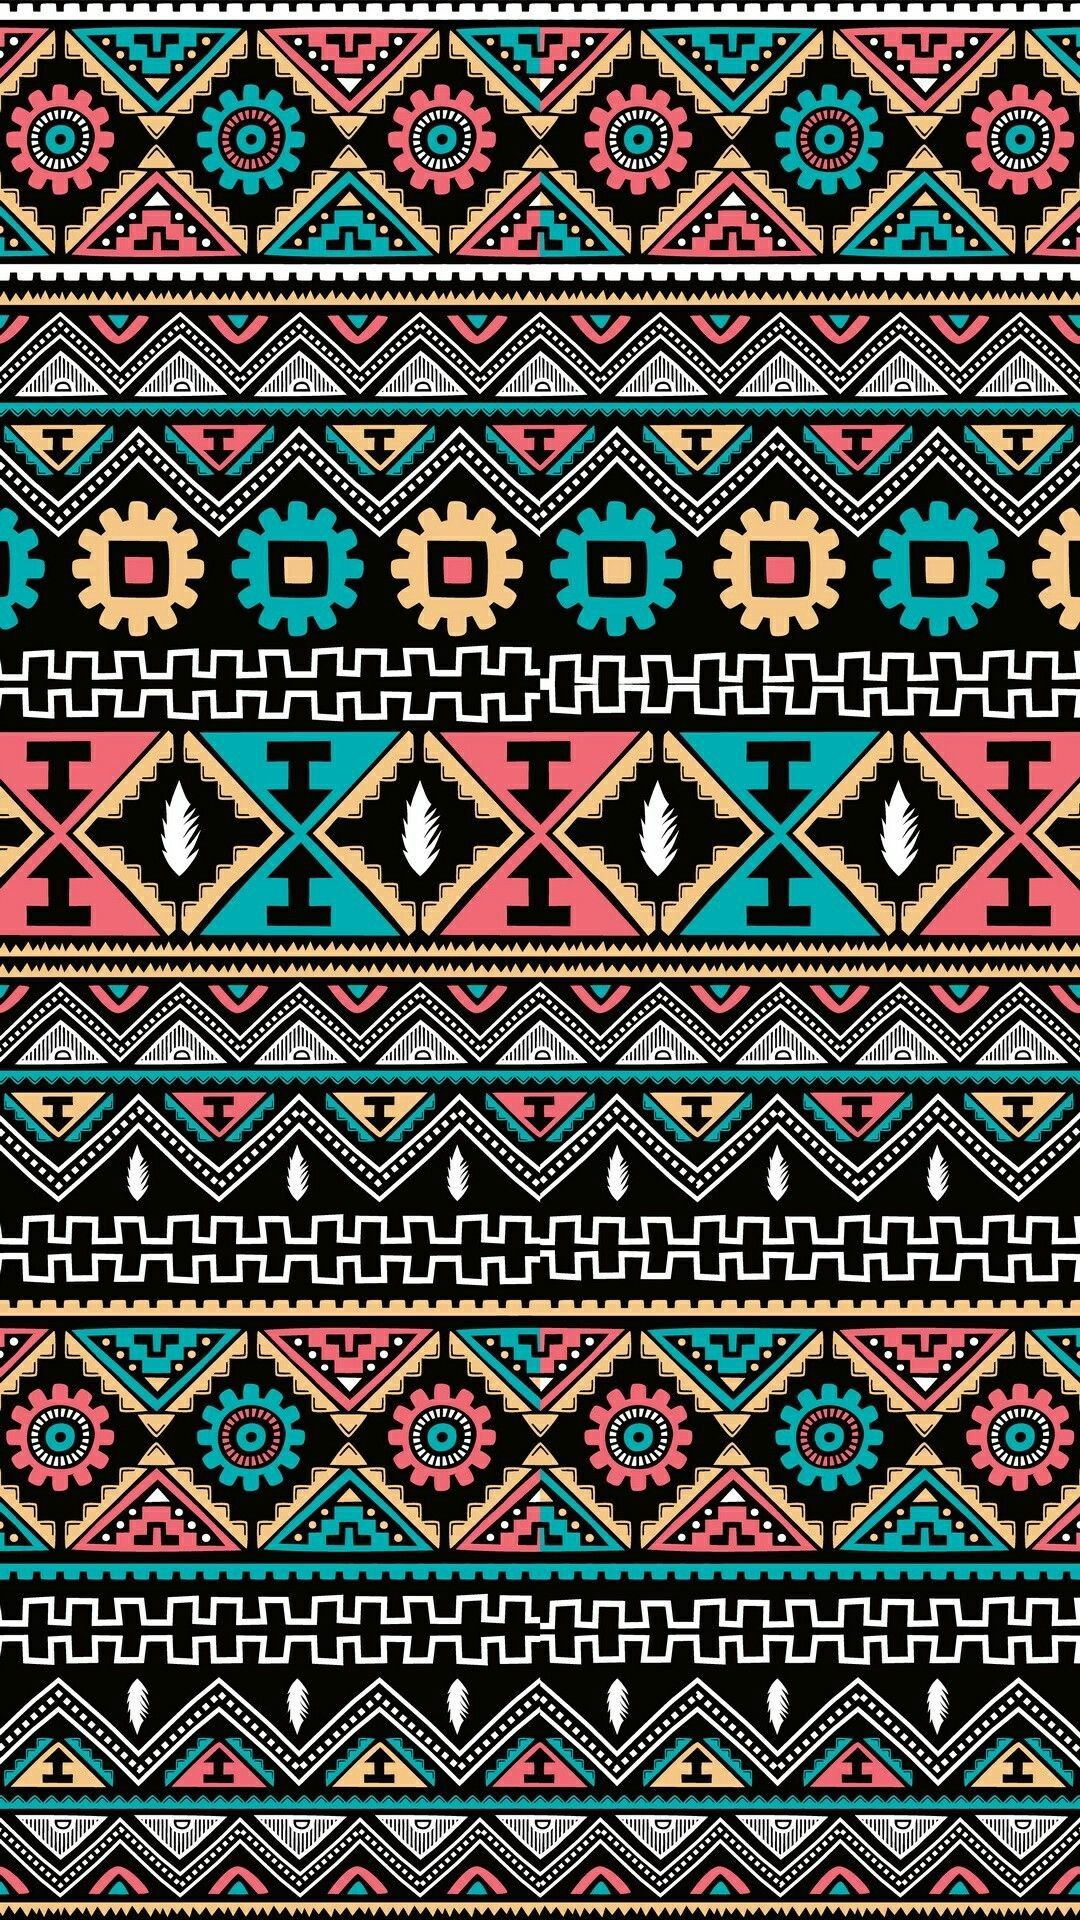 Chevron Wallpapers Hd Resolution » Hupages » Download